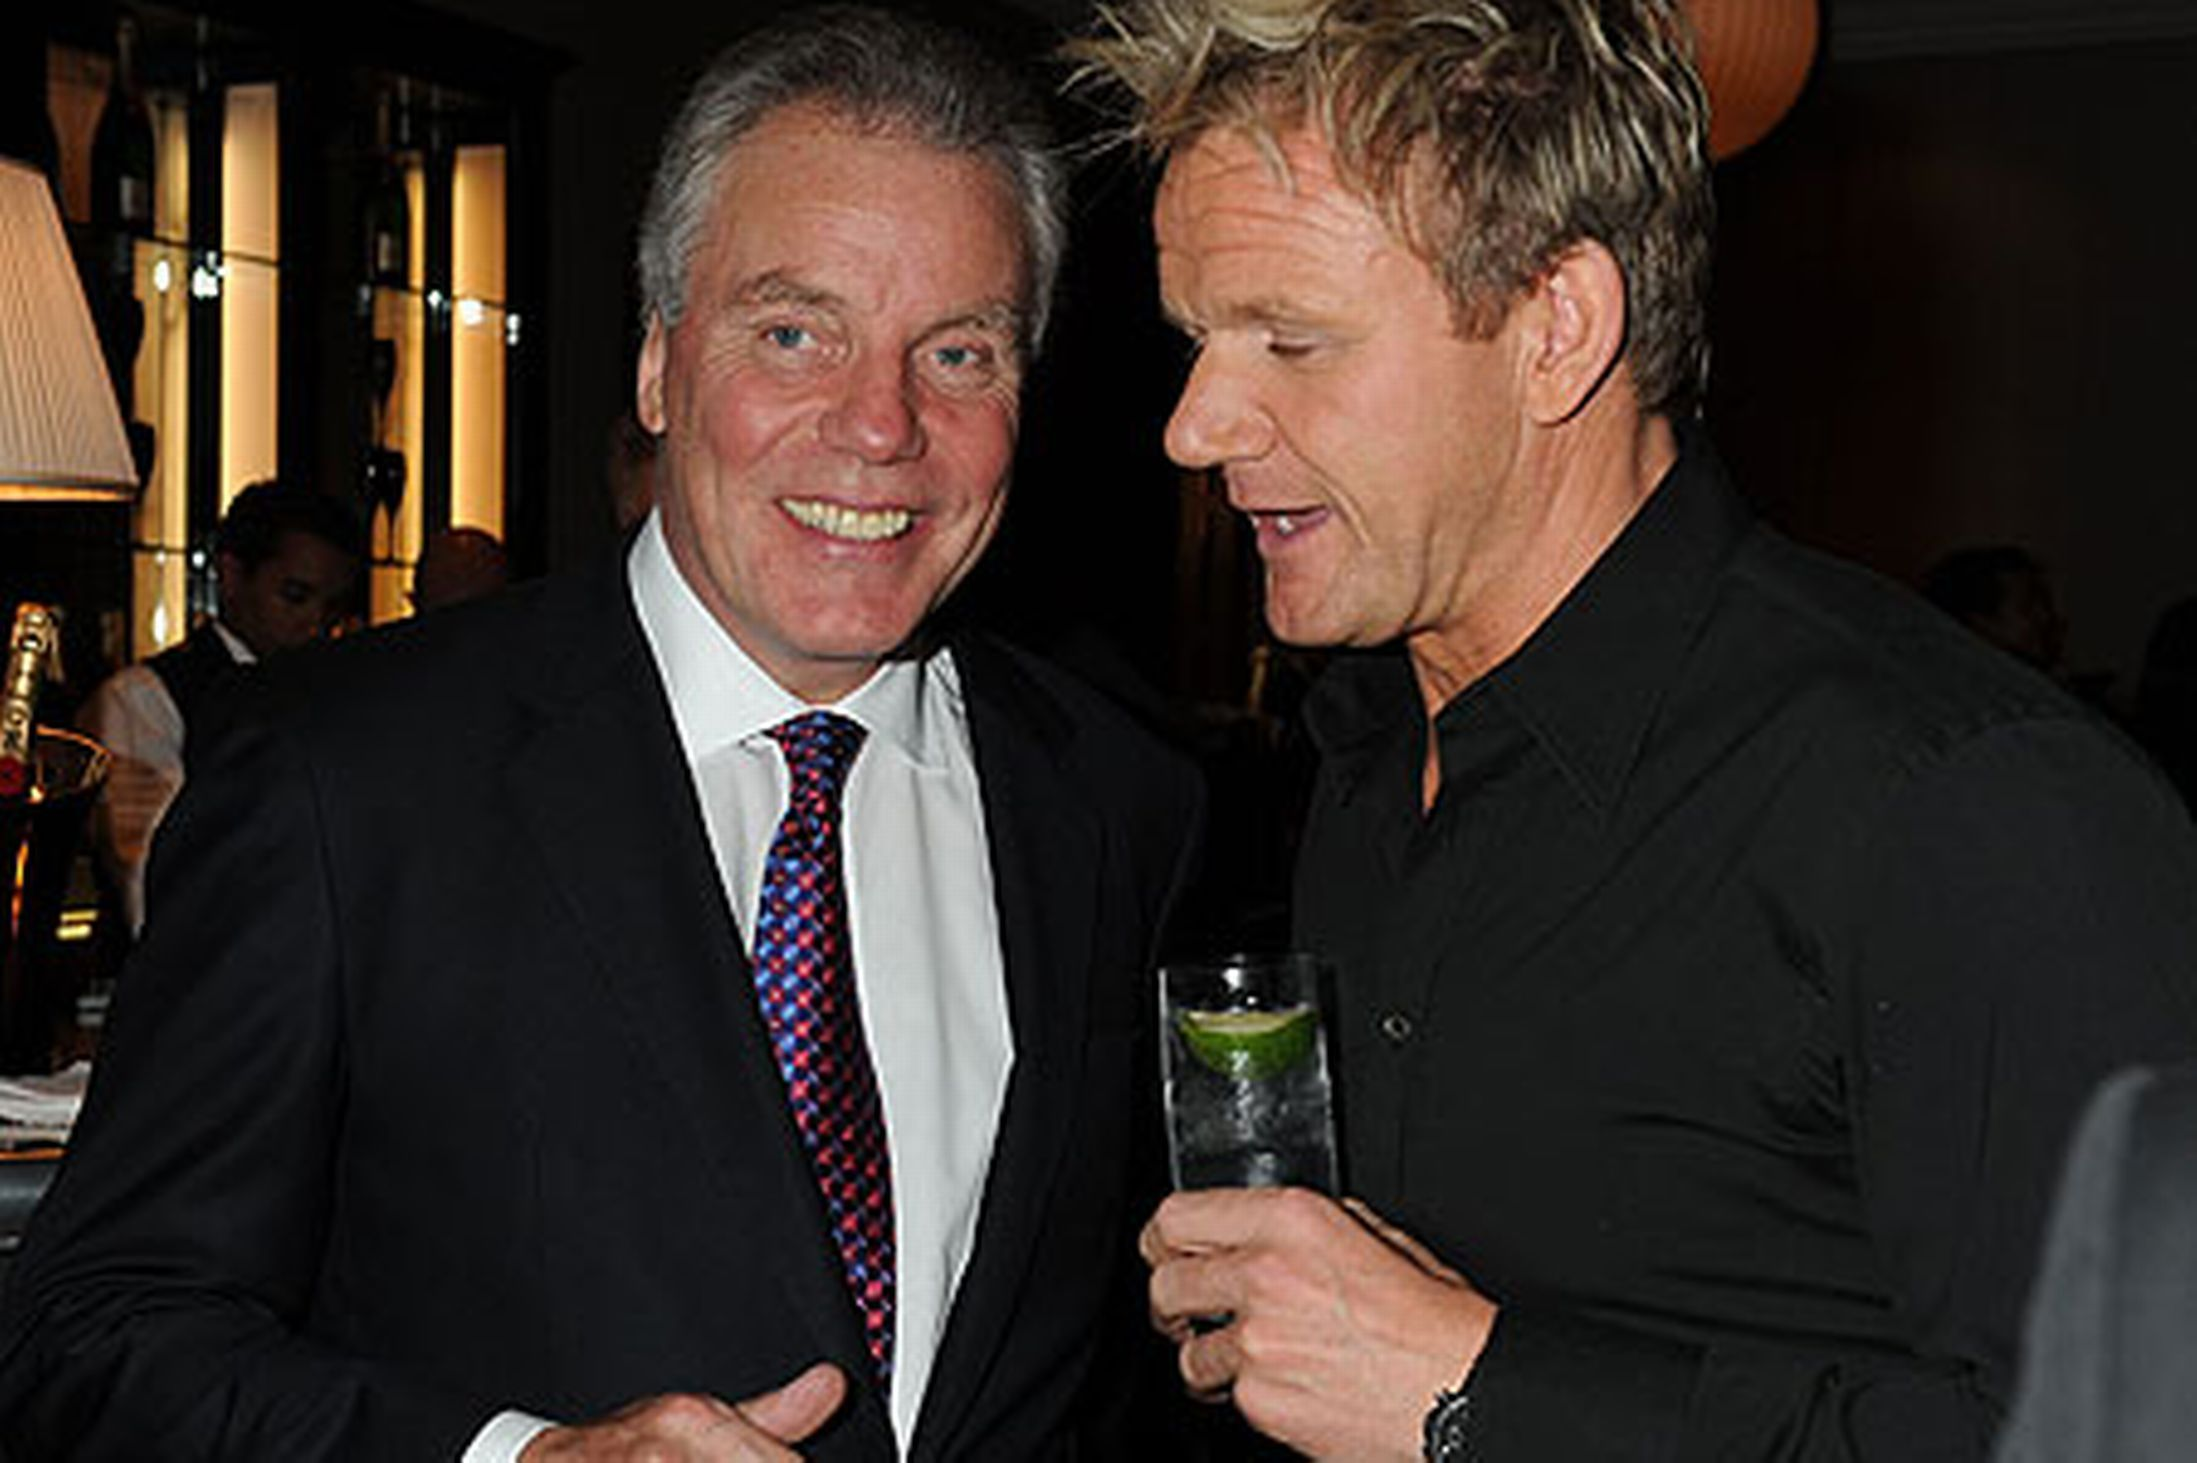 FAMILY FEUD: Christoper Hutcheson and his son-in-law Gordon Ramsay have been in a long-running quarrel.